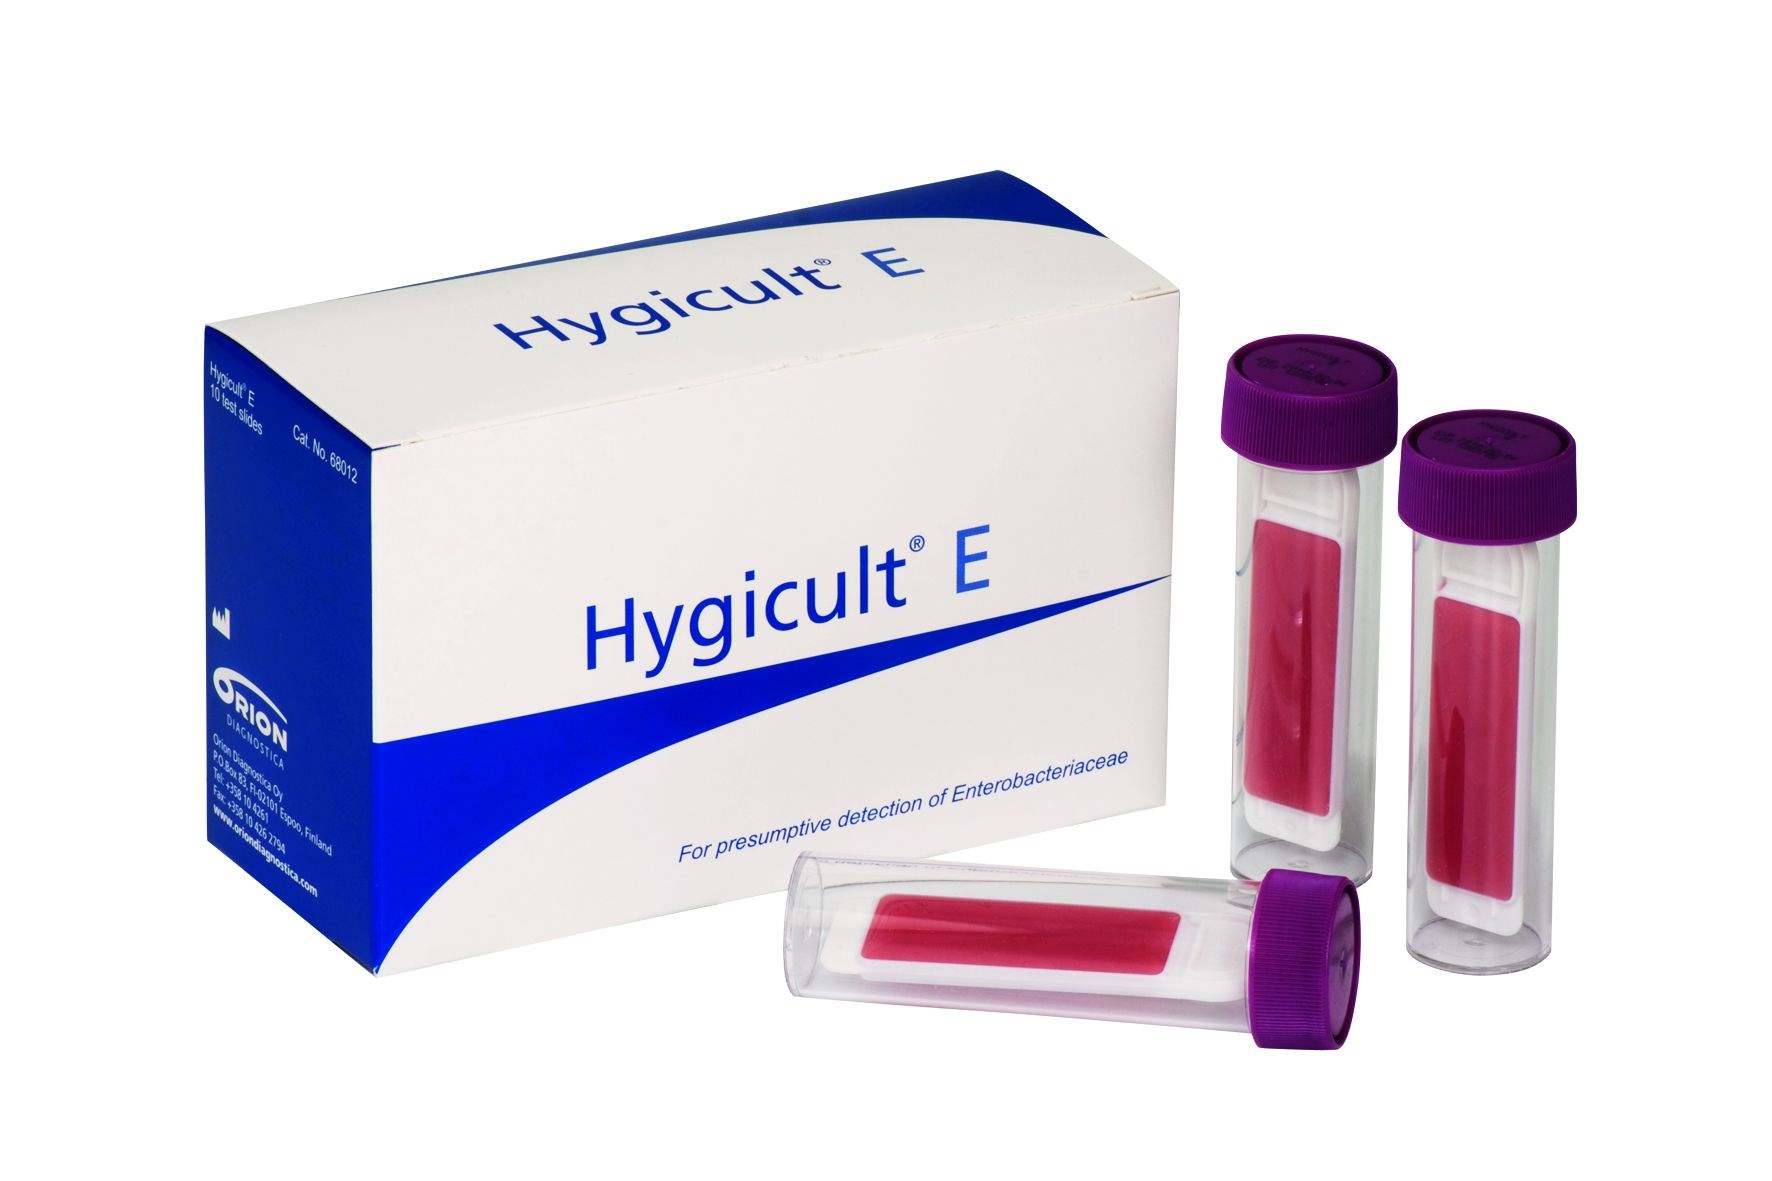 Hygicult E for enterobacteriaceae